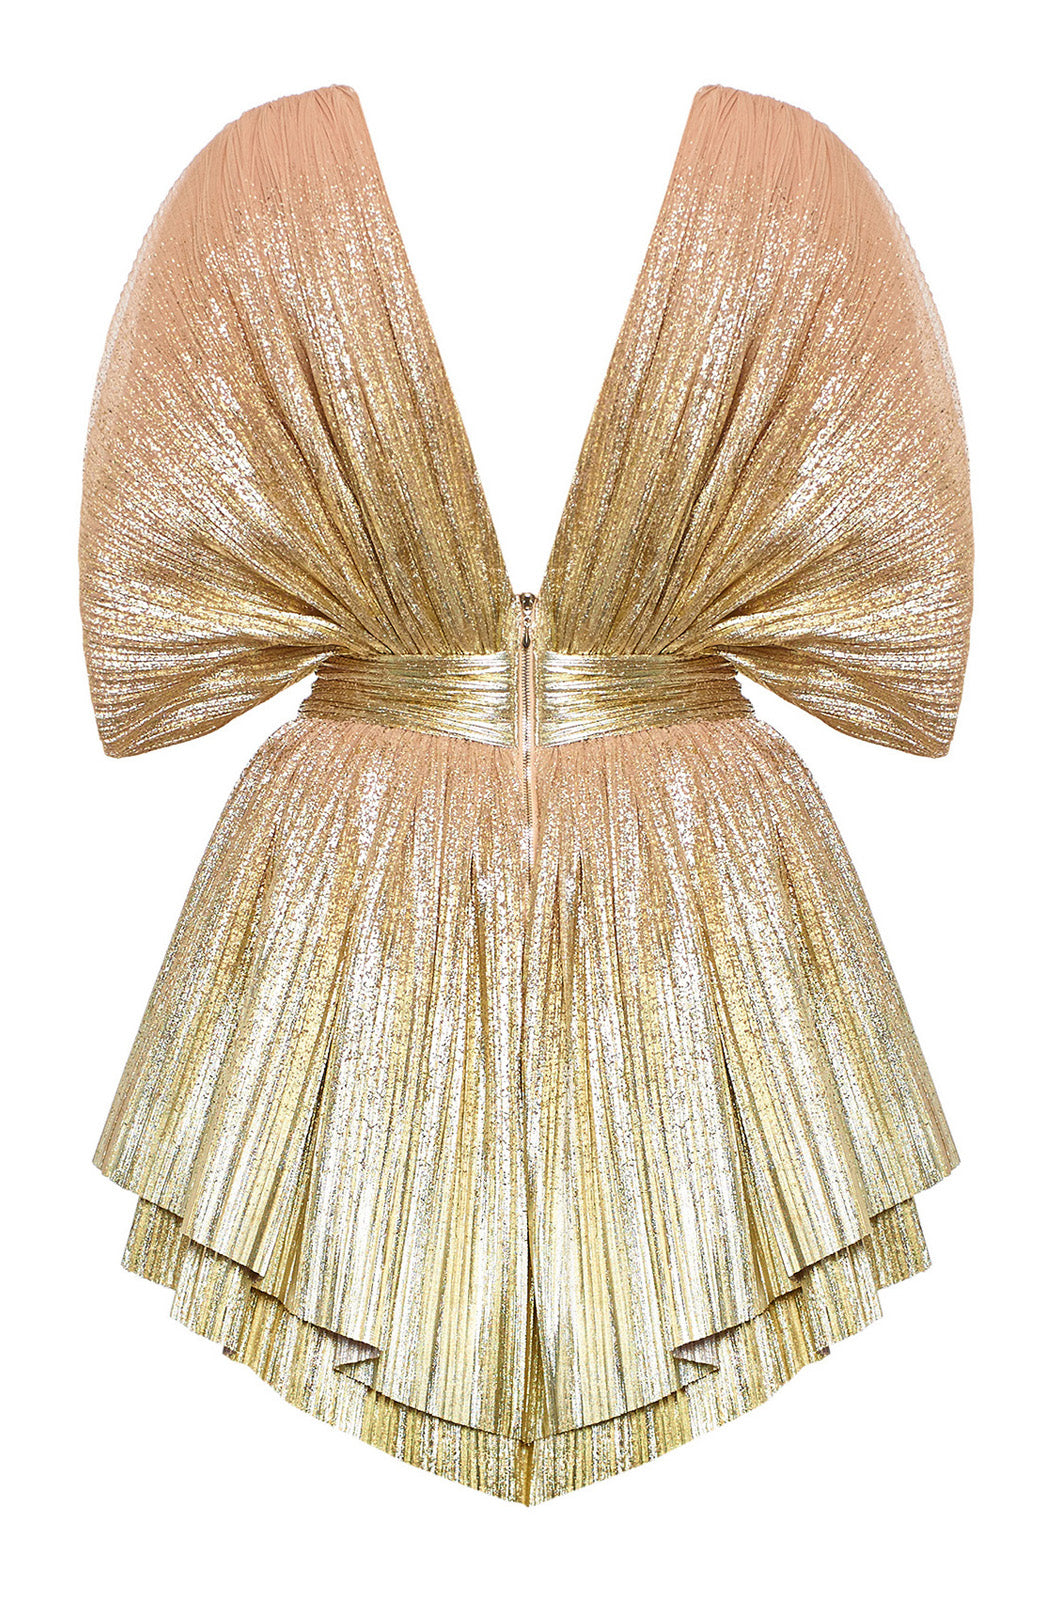 Golden metallic mini dress